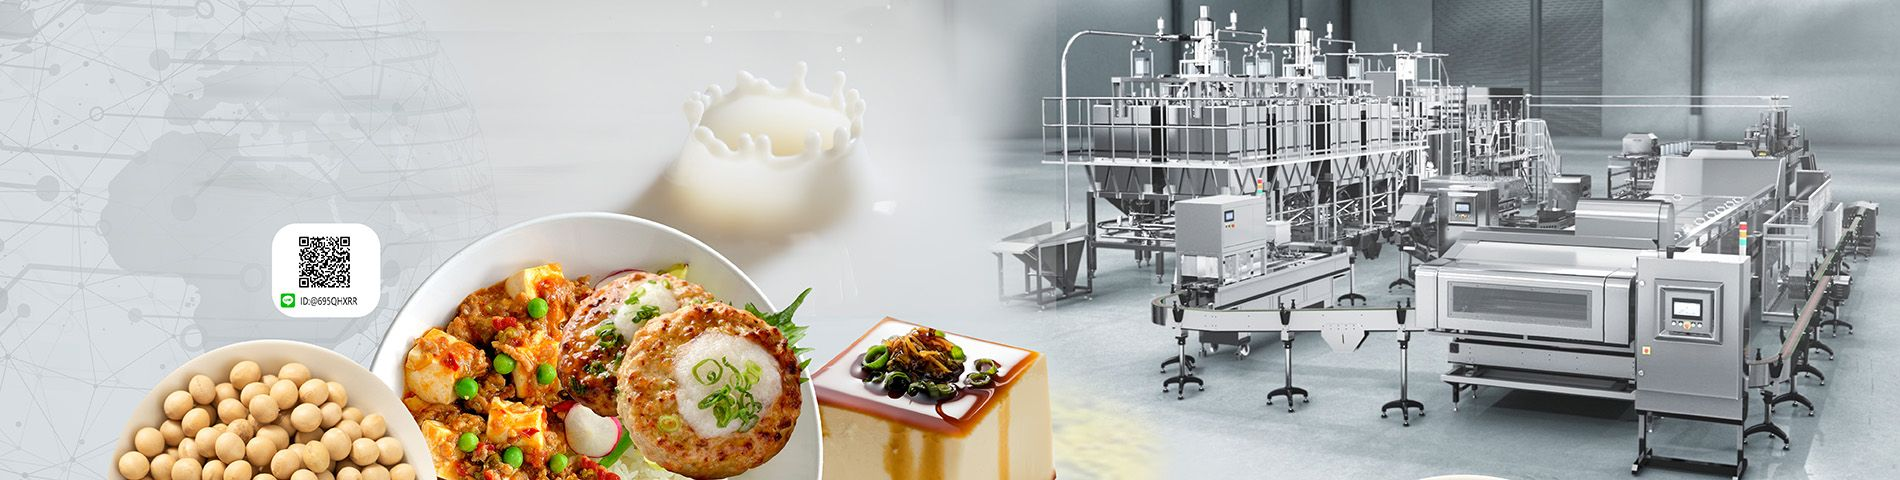 Leading of Soybean Food  Production Solution Provider